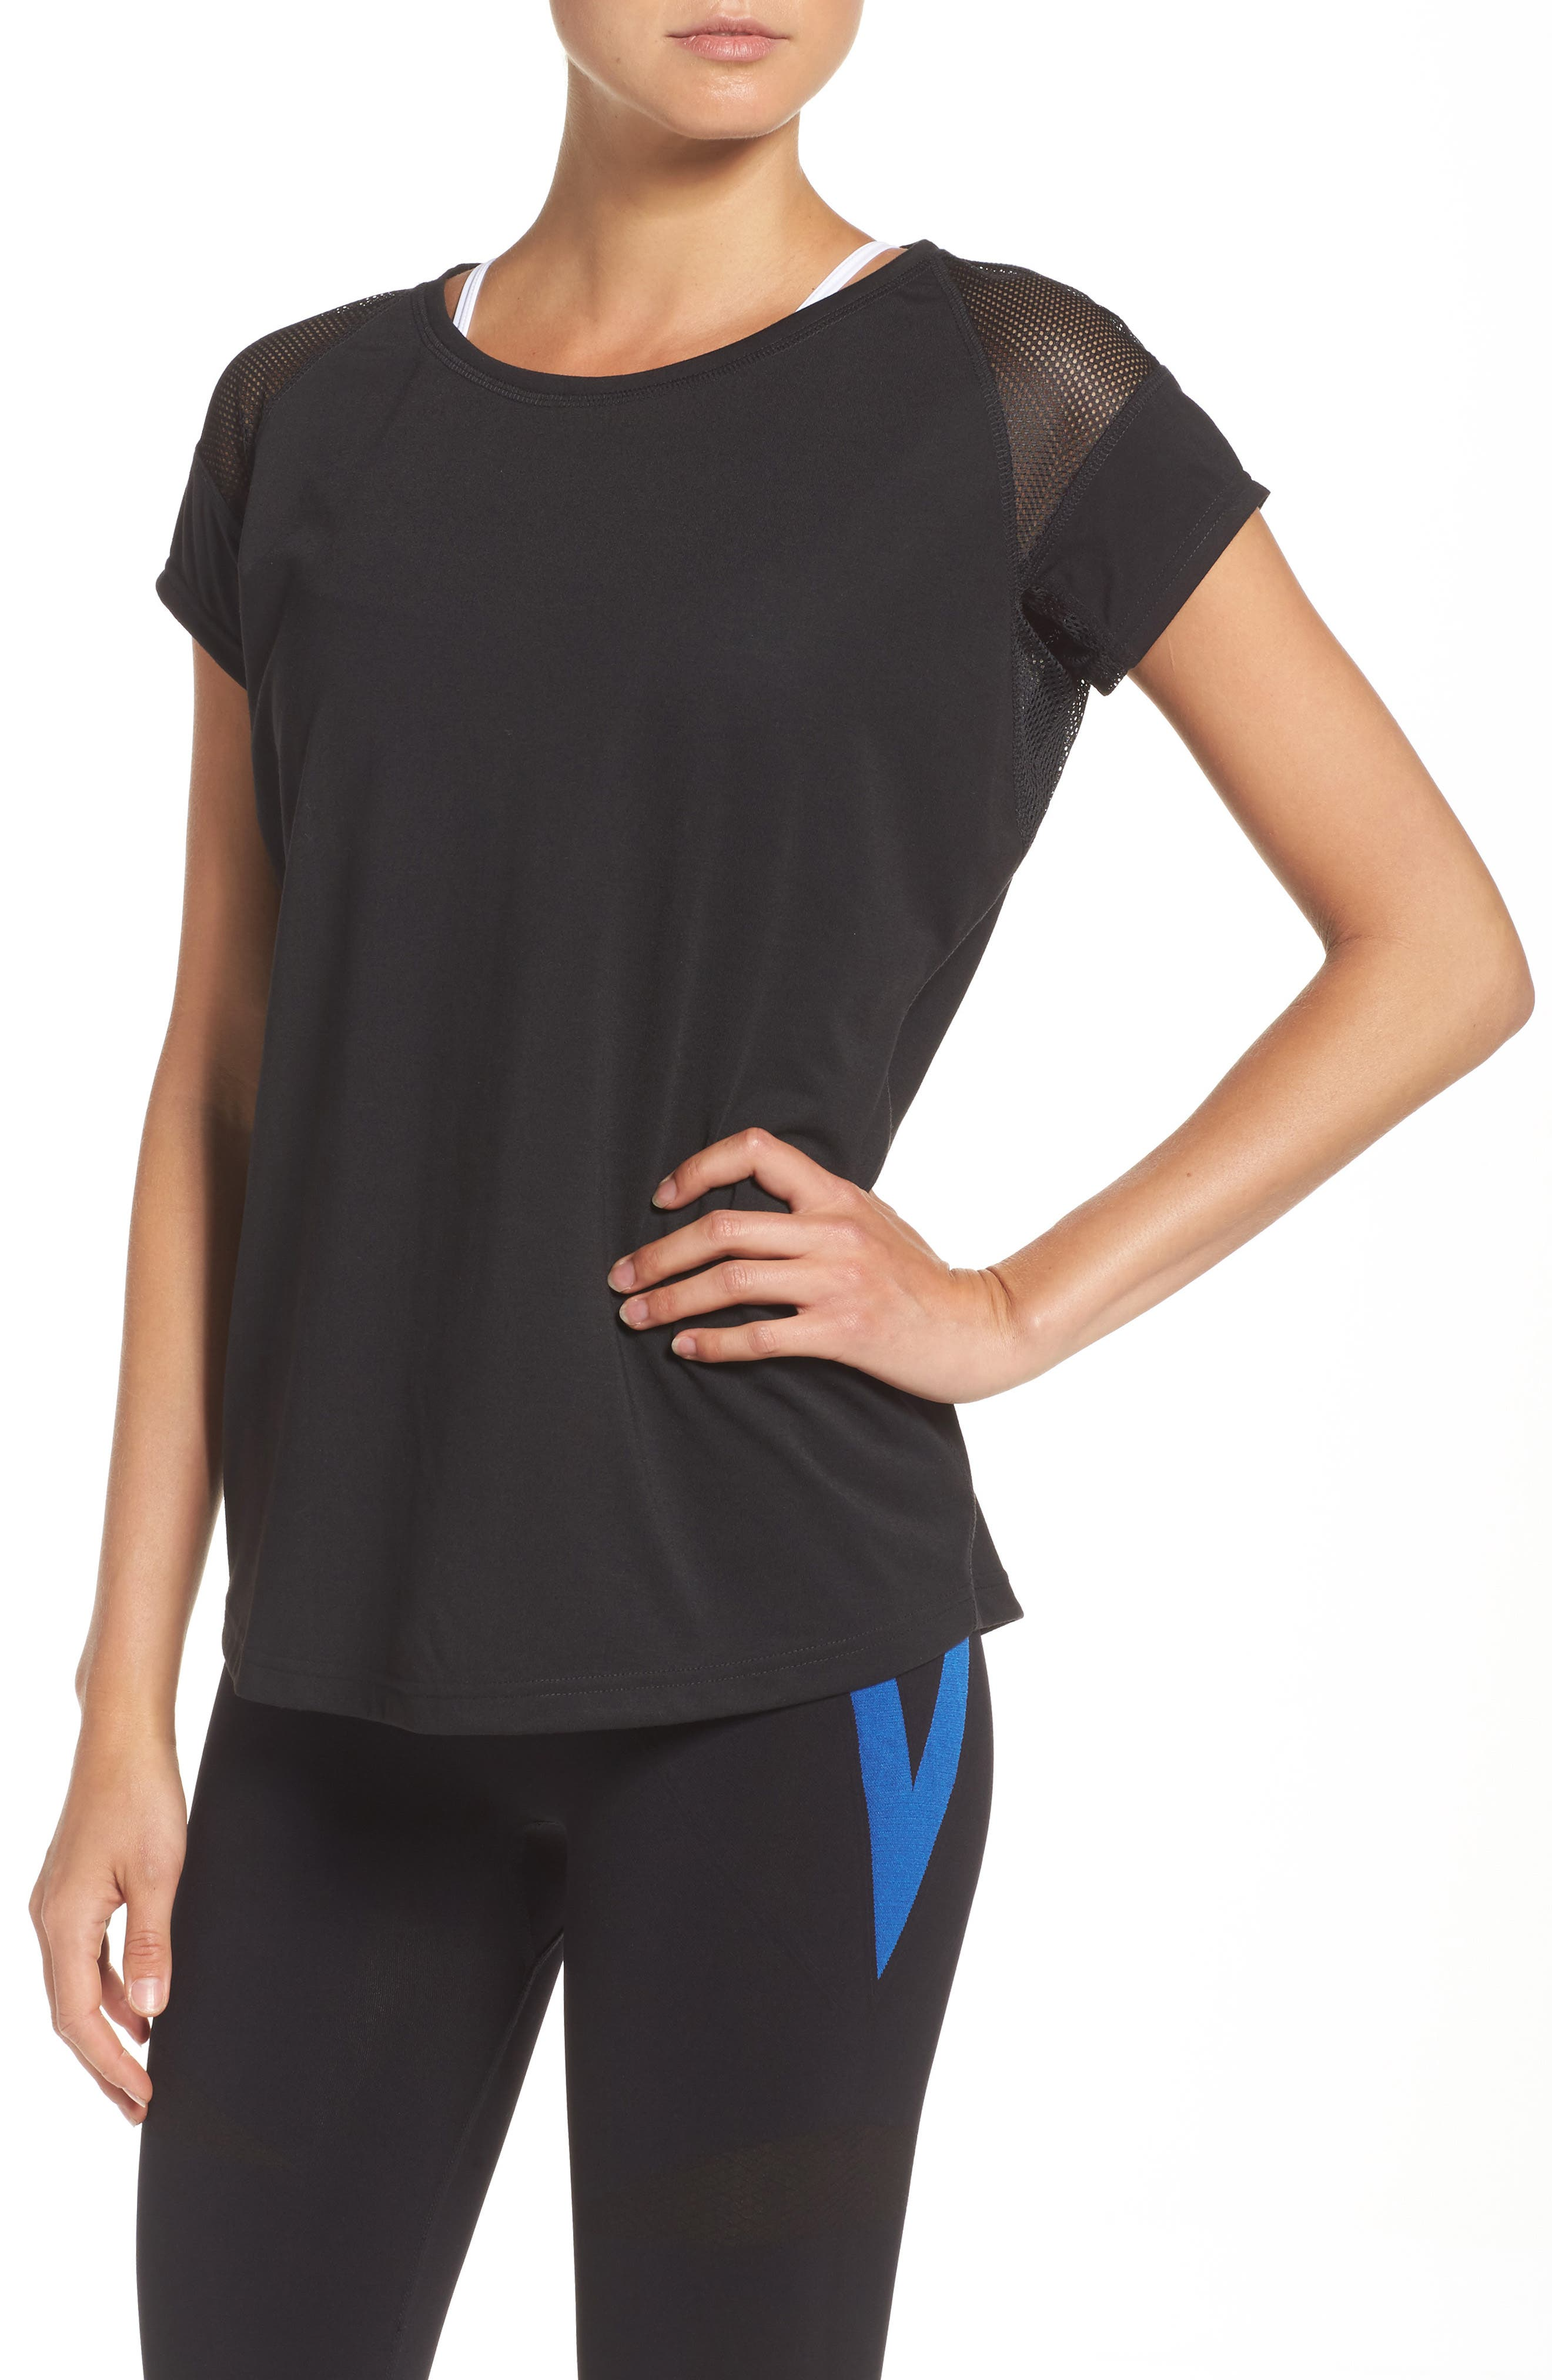 BoomBoom Athletica Sport Perfect Tee,                         Main,                         color, Black